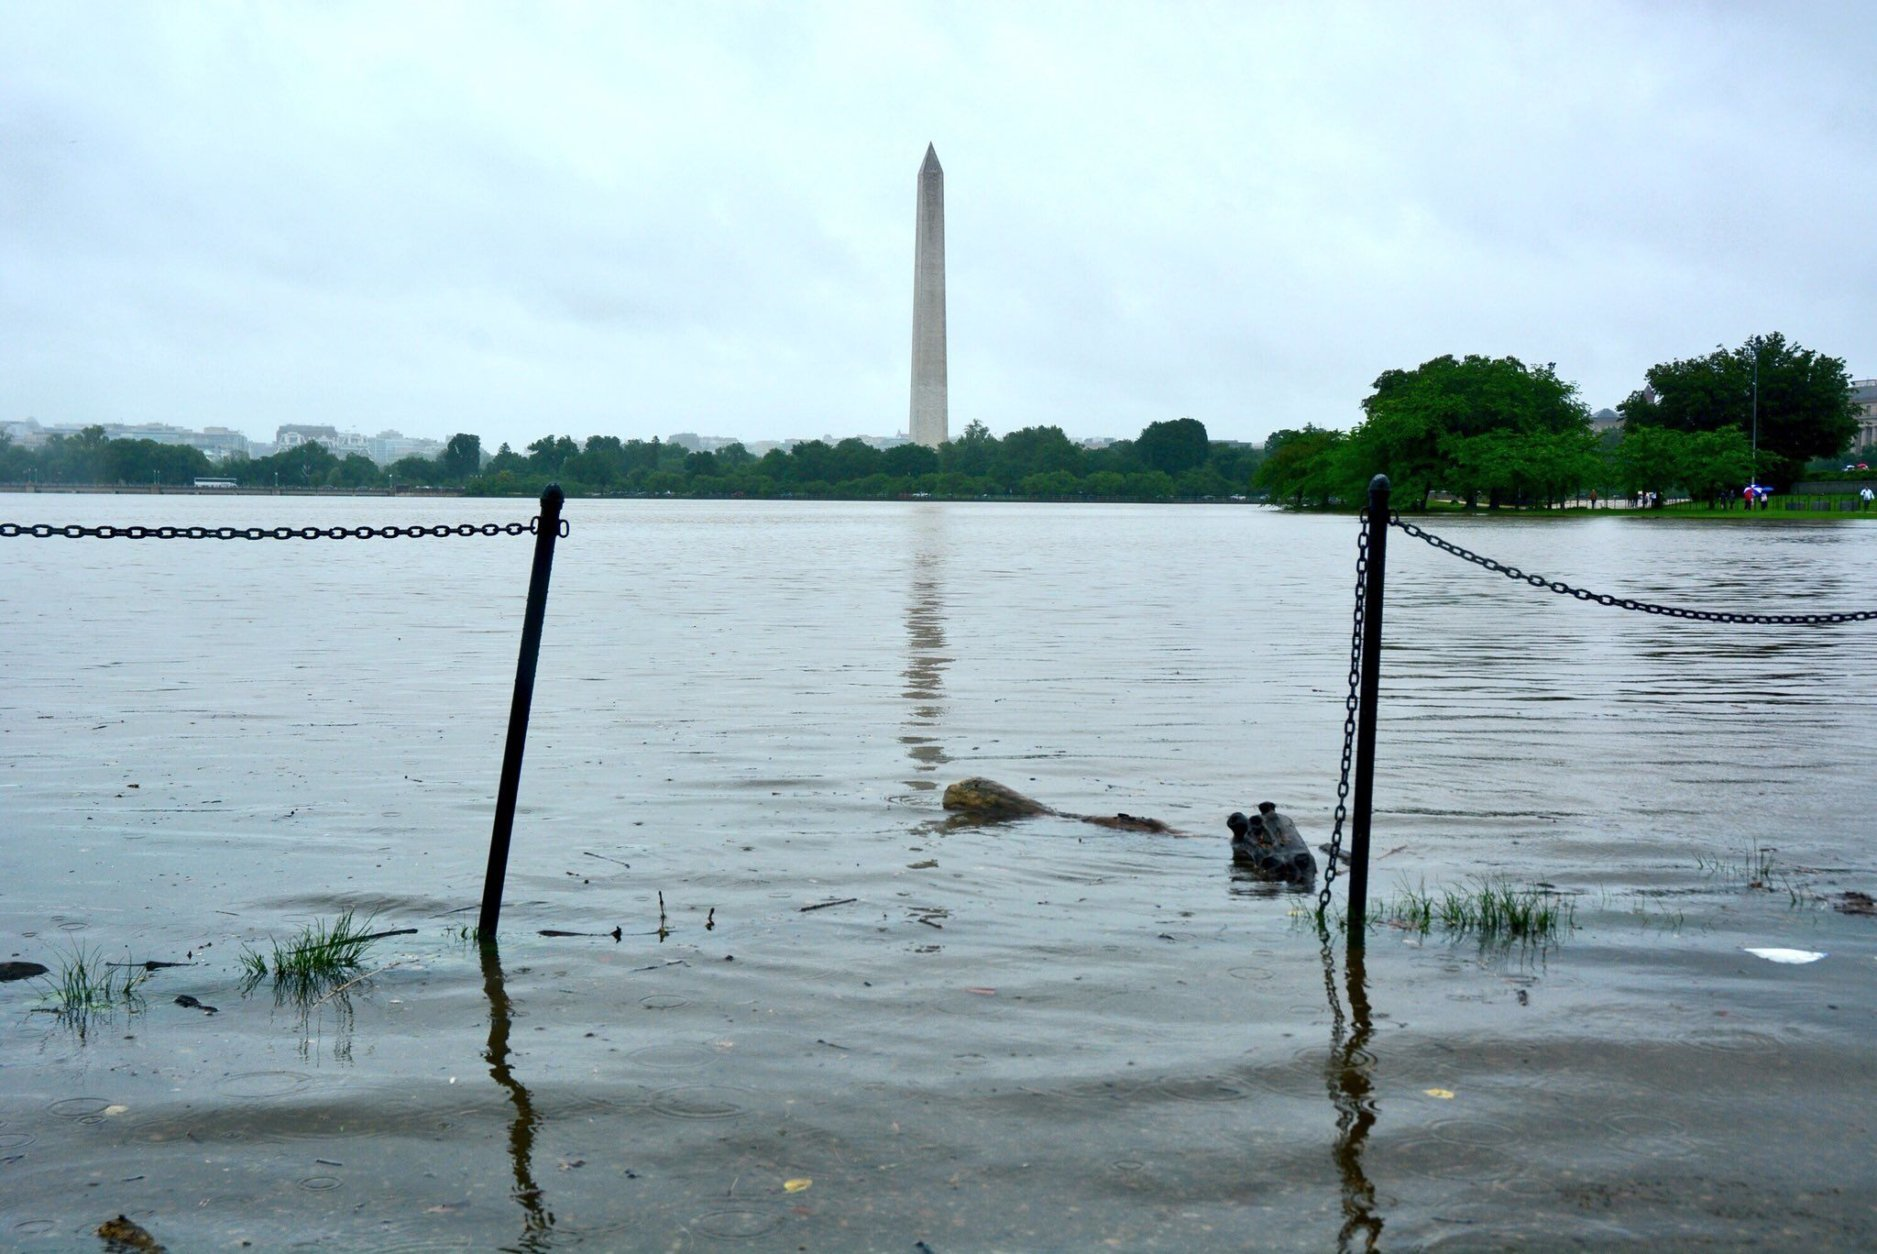 The Washington Monument can be seen in the distance as floodwaters build up at the Tidal Basin. (WTOP/Dave Dildine)